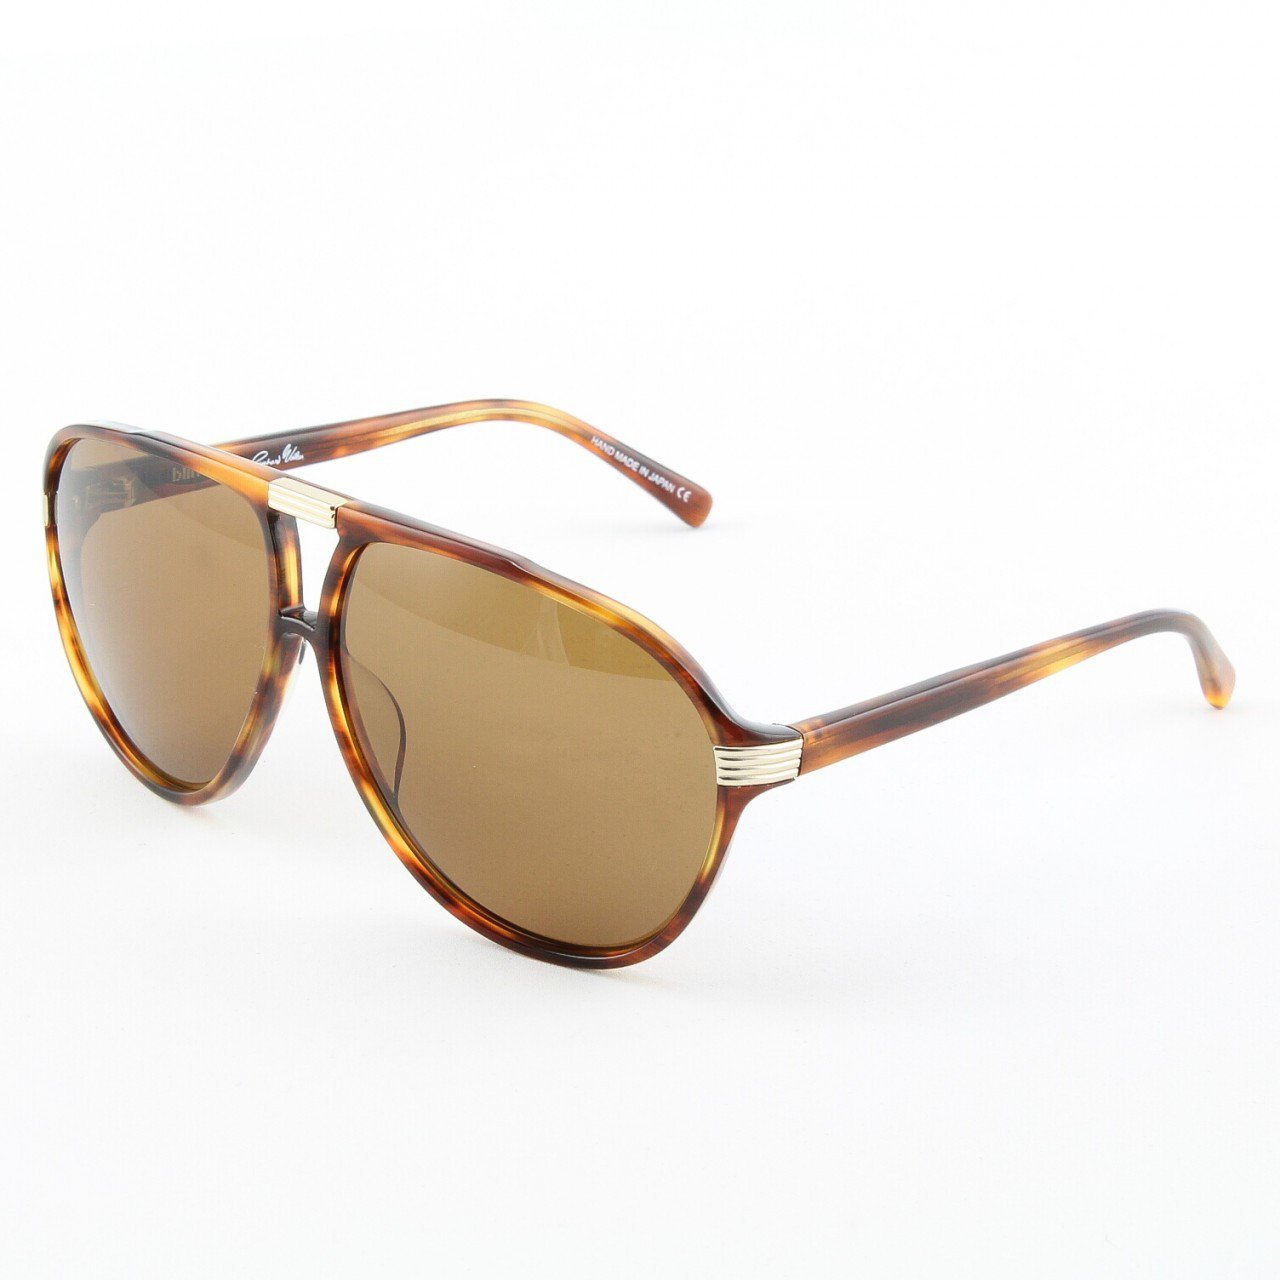 Blinde The Shakedown Unisex Aviator Sunglasses Col. Tortoise with Solid Brown Lenses